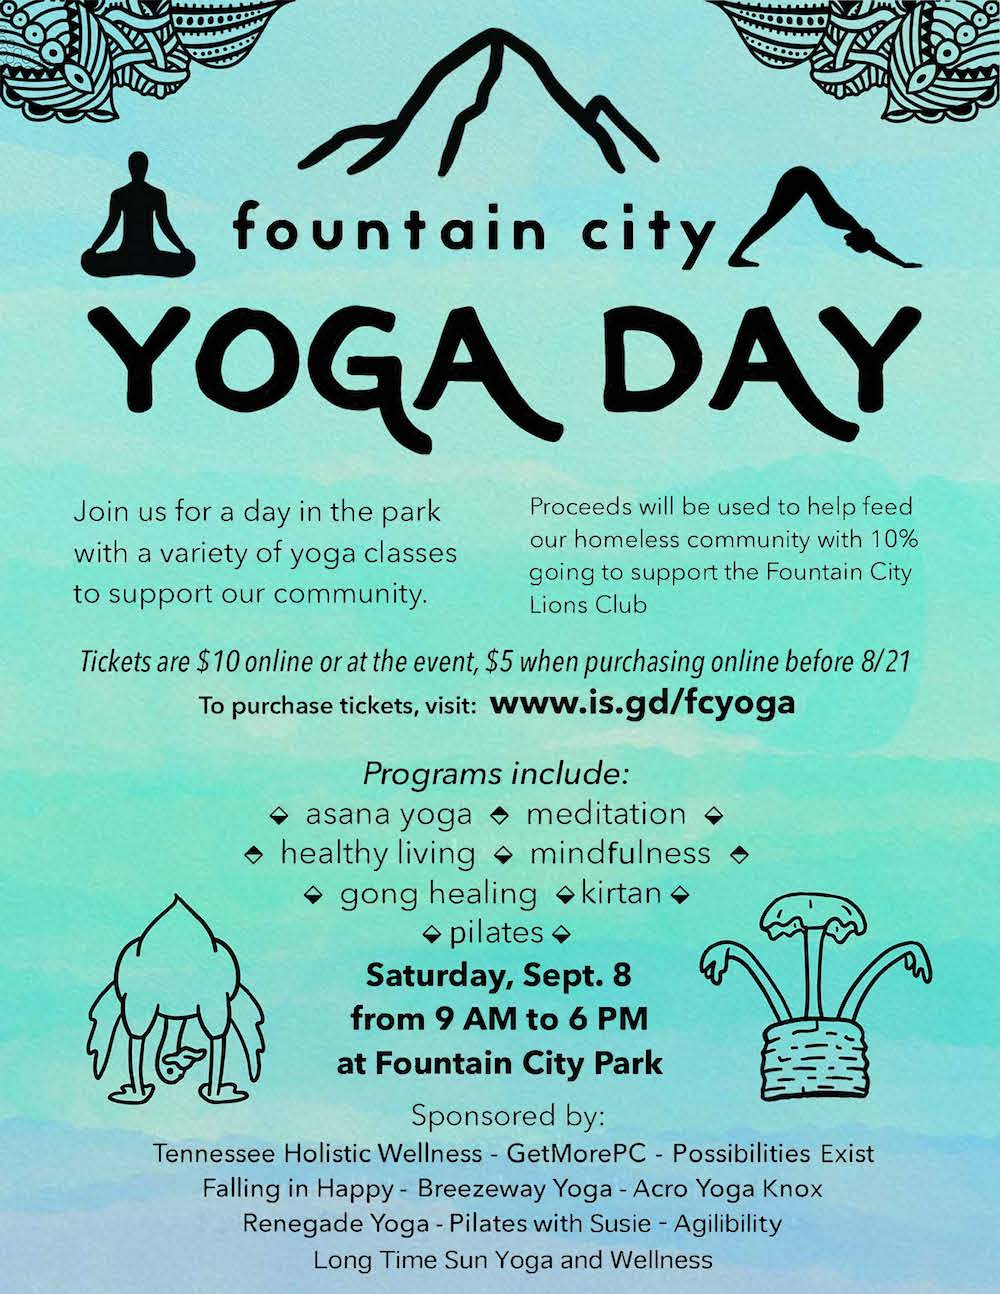 fountain city yoga day marketing